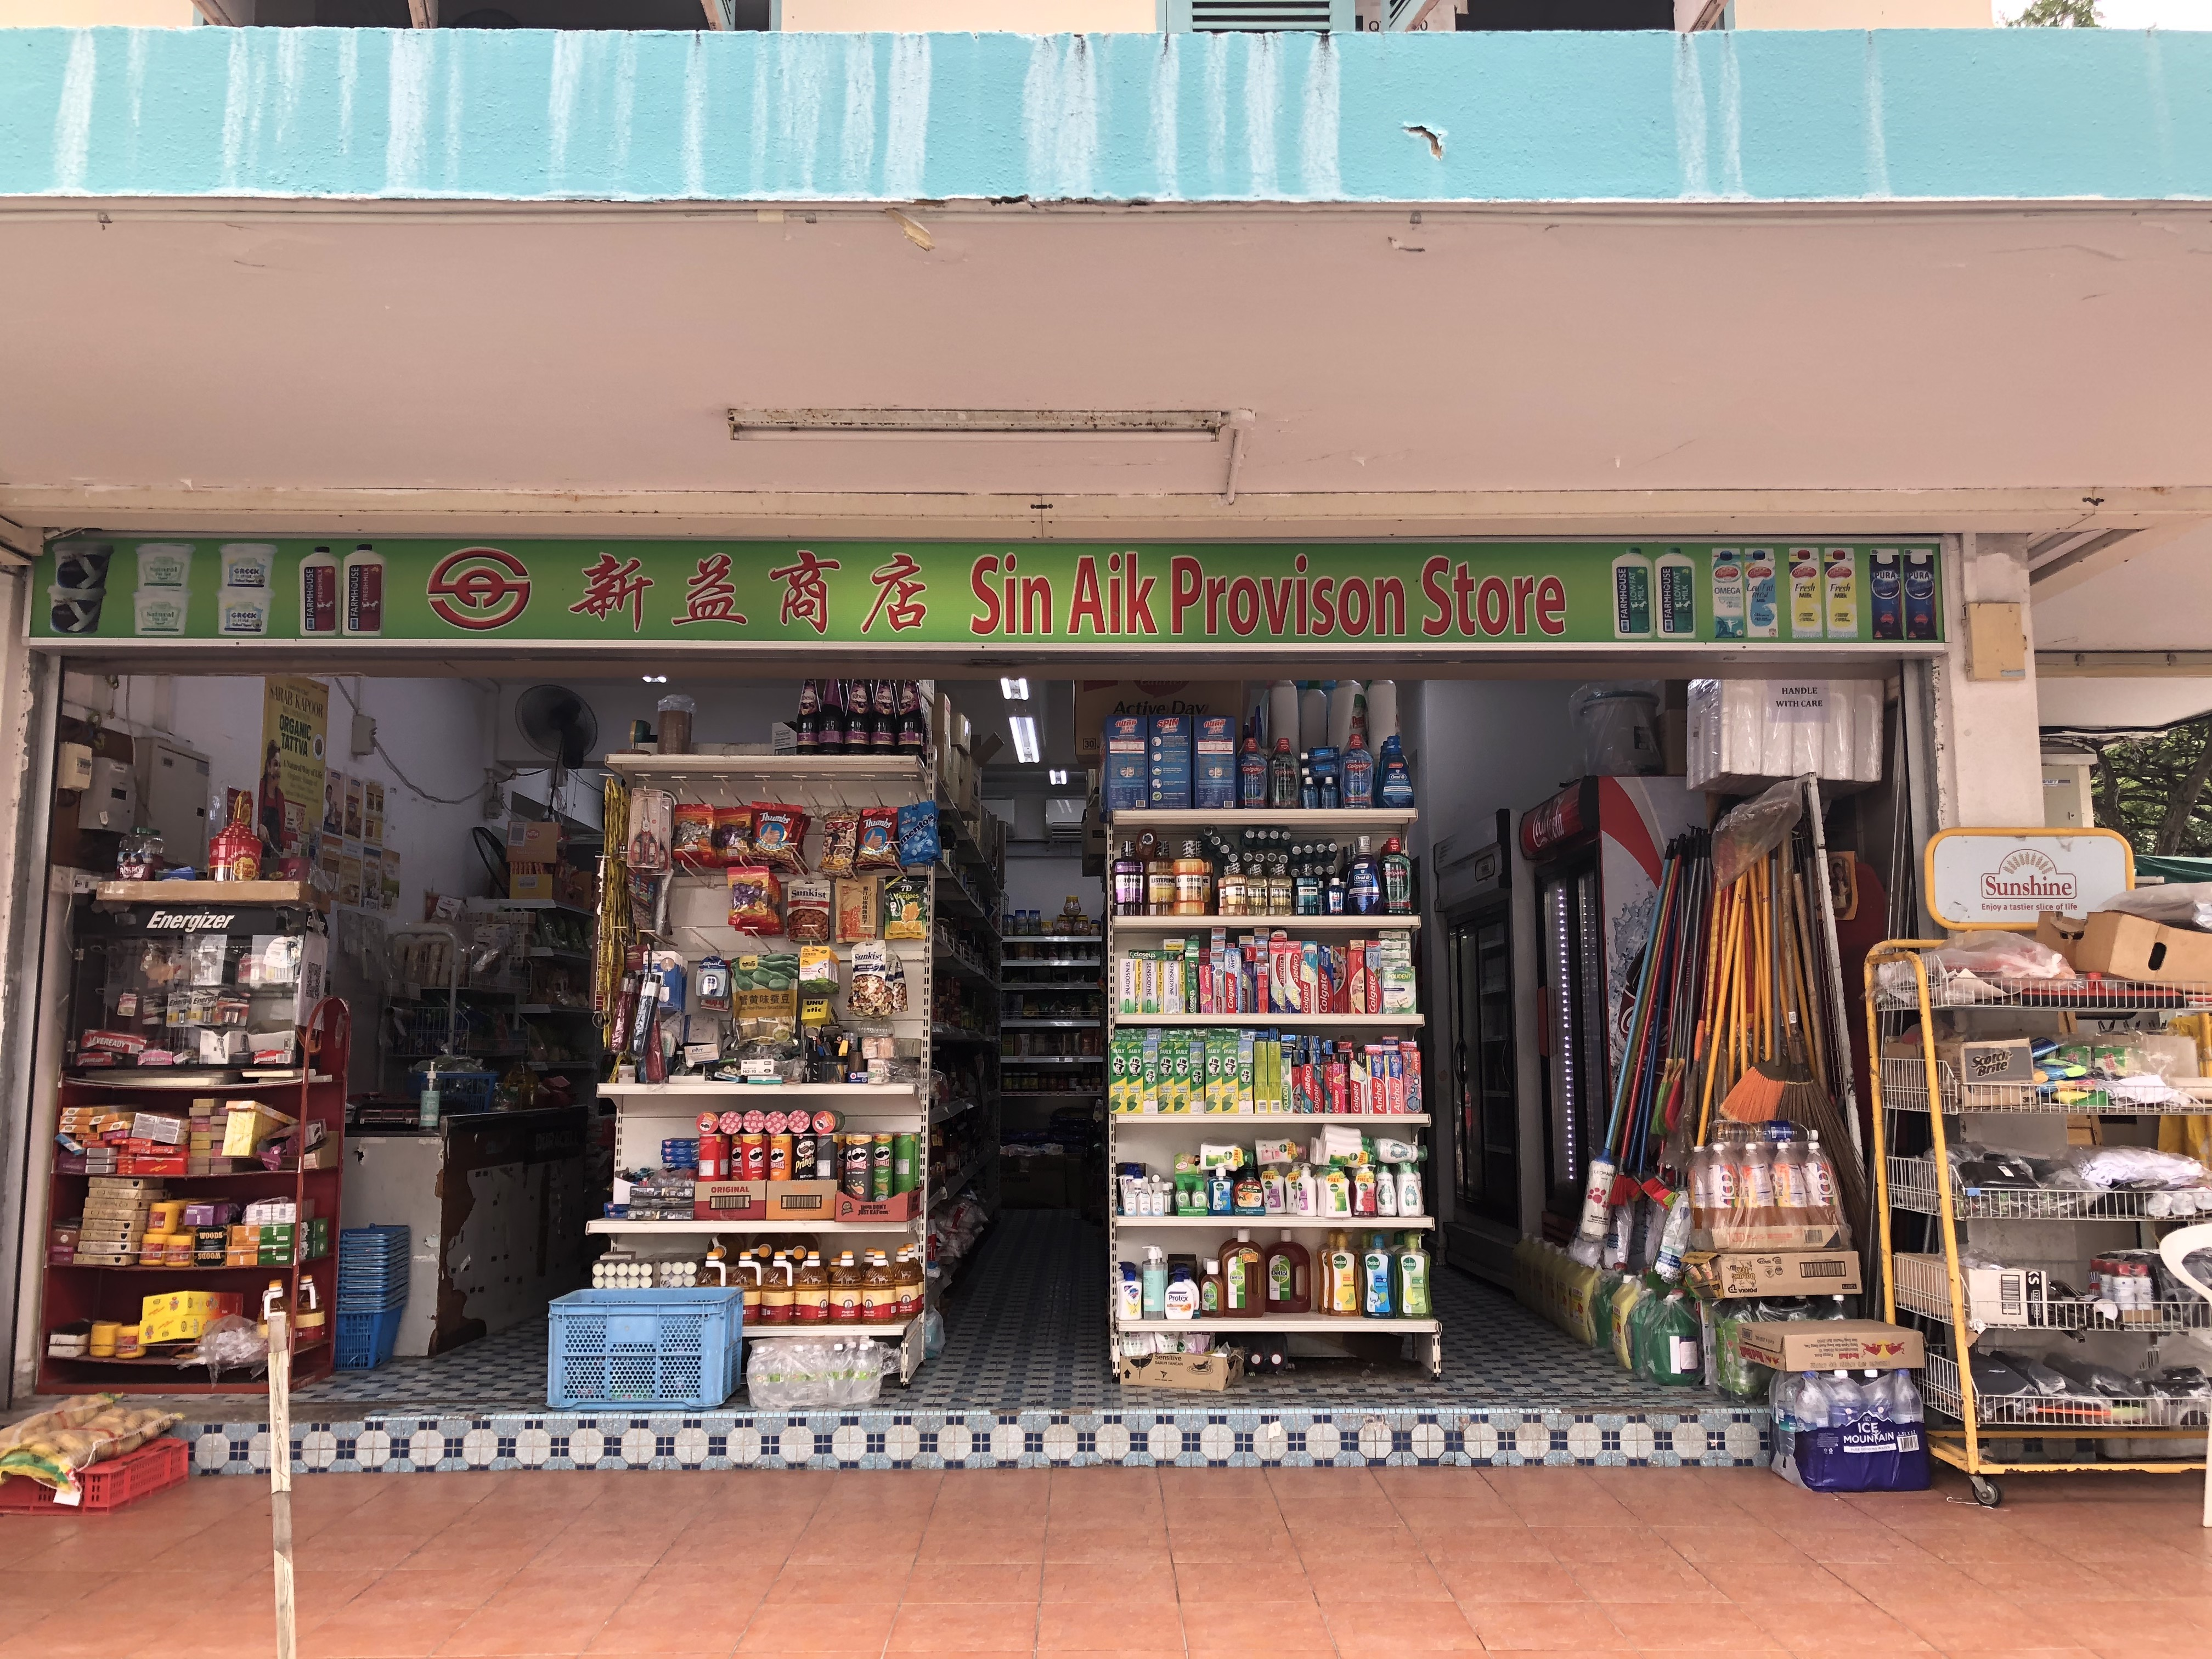 Sin Aik Provision Store. Photo: Connected to India